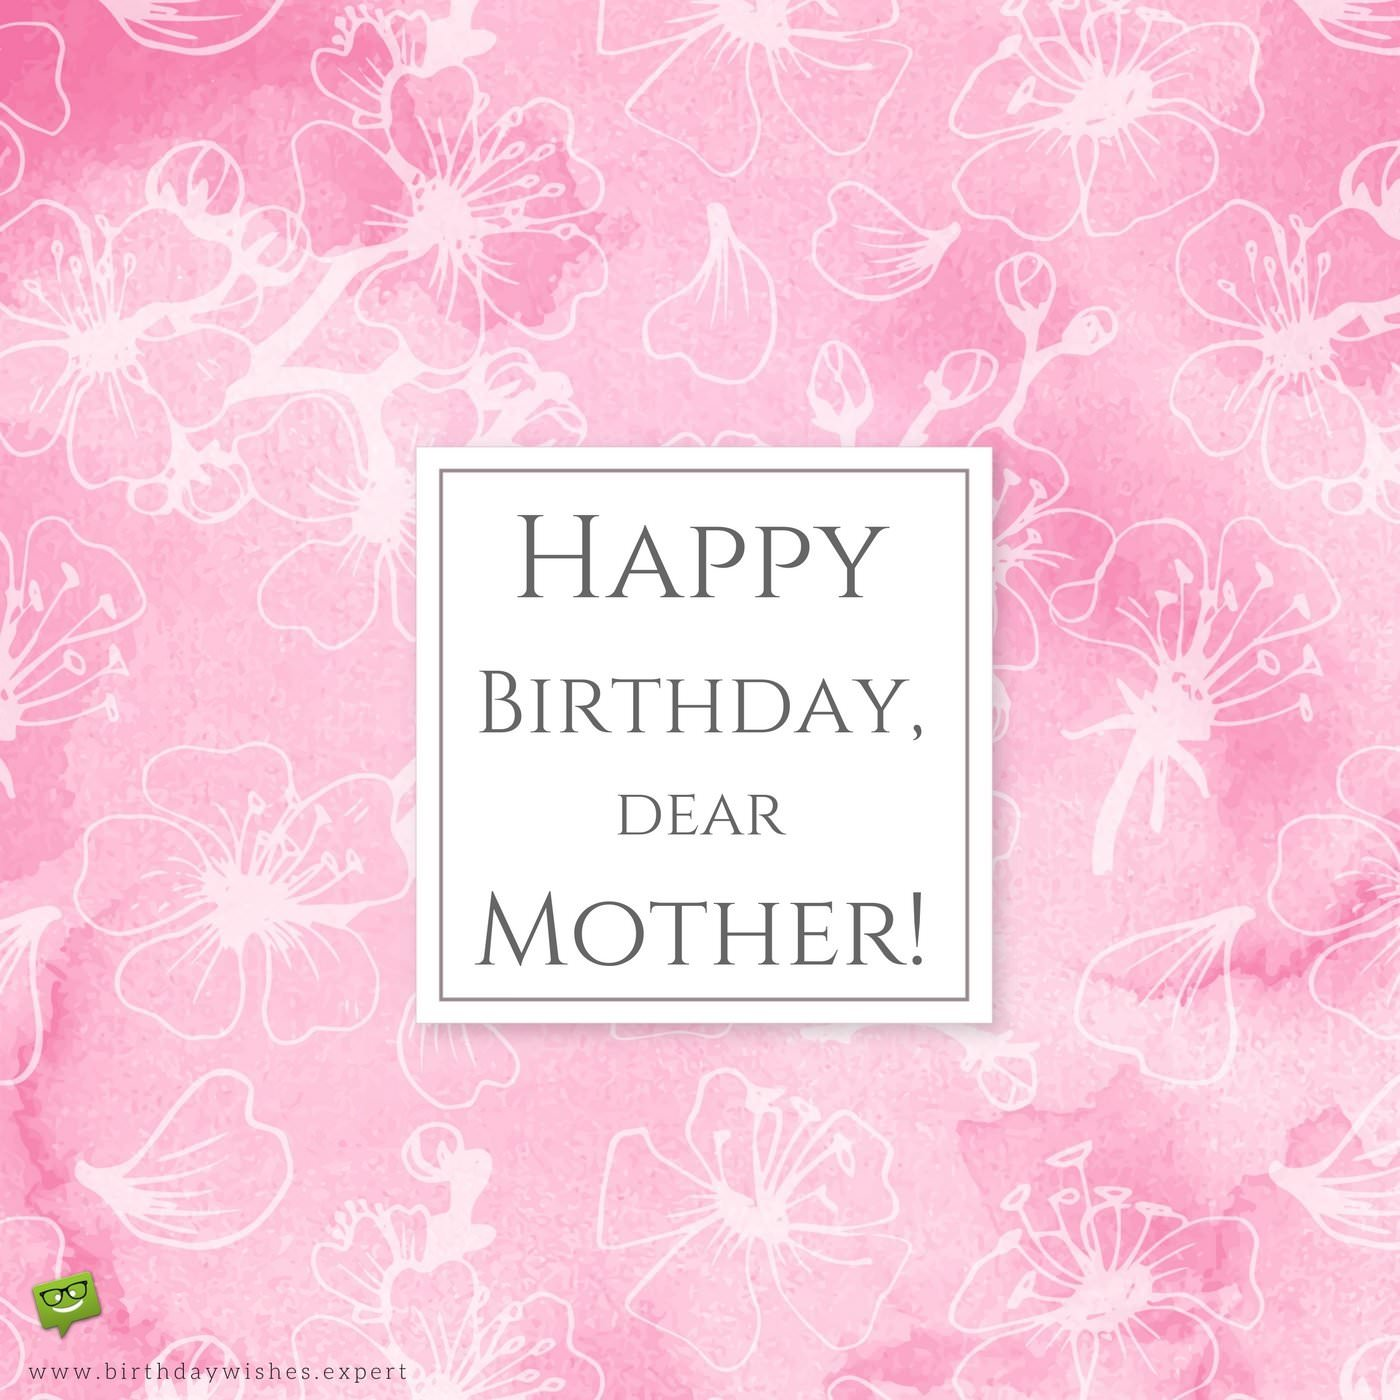 37 wishes about happy birthday for amazing mother preet kamal